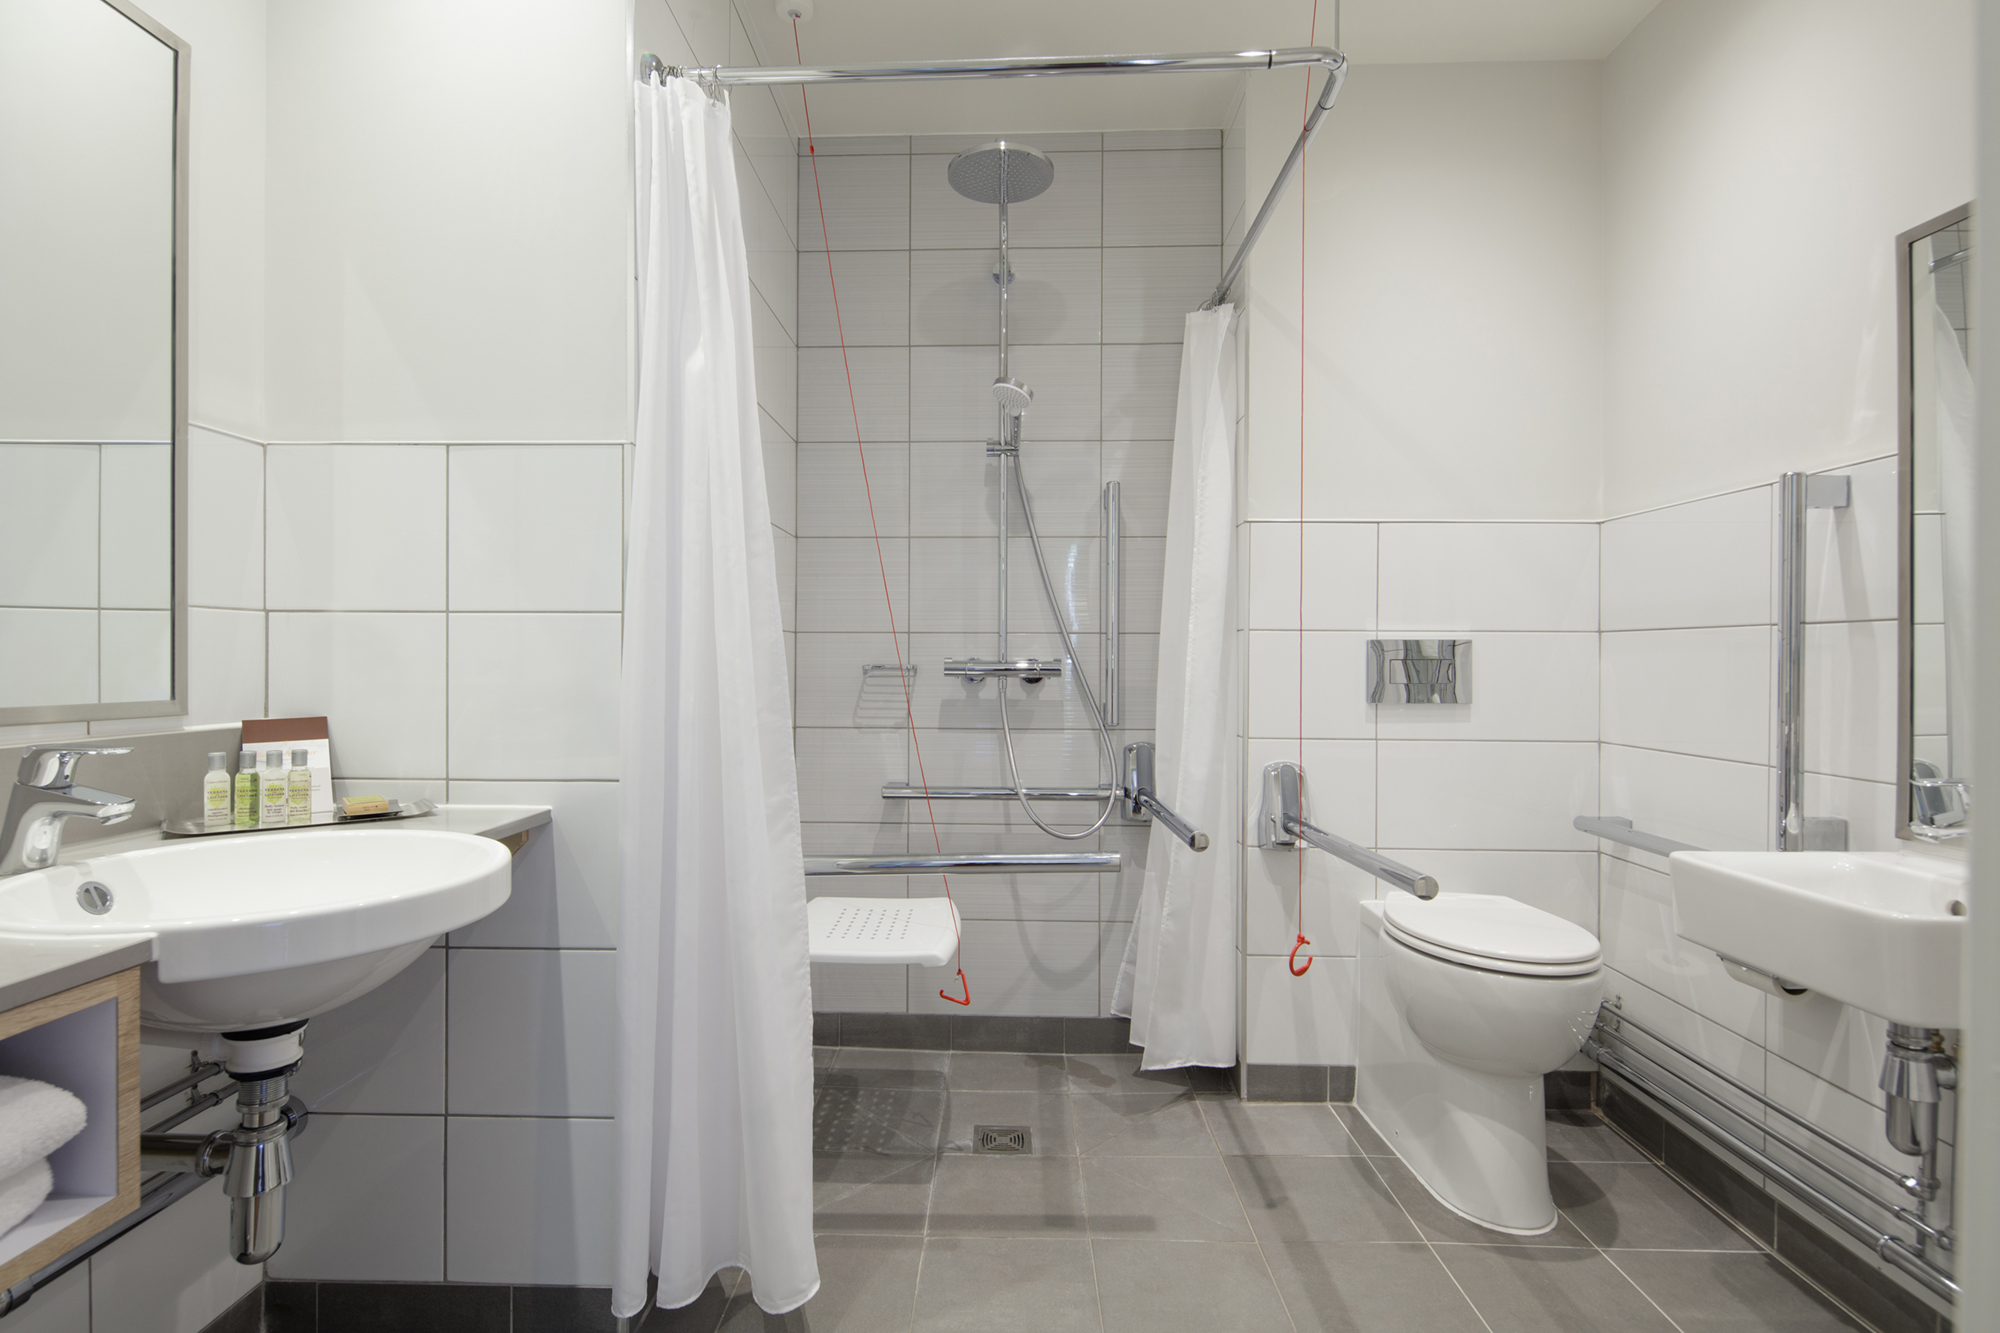 accessible bedroom bathroom doubletree by hilton stratford-upon-avon